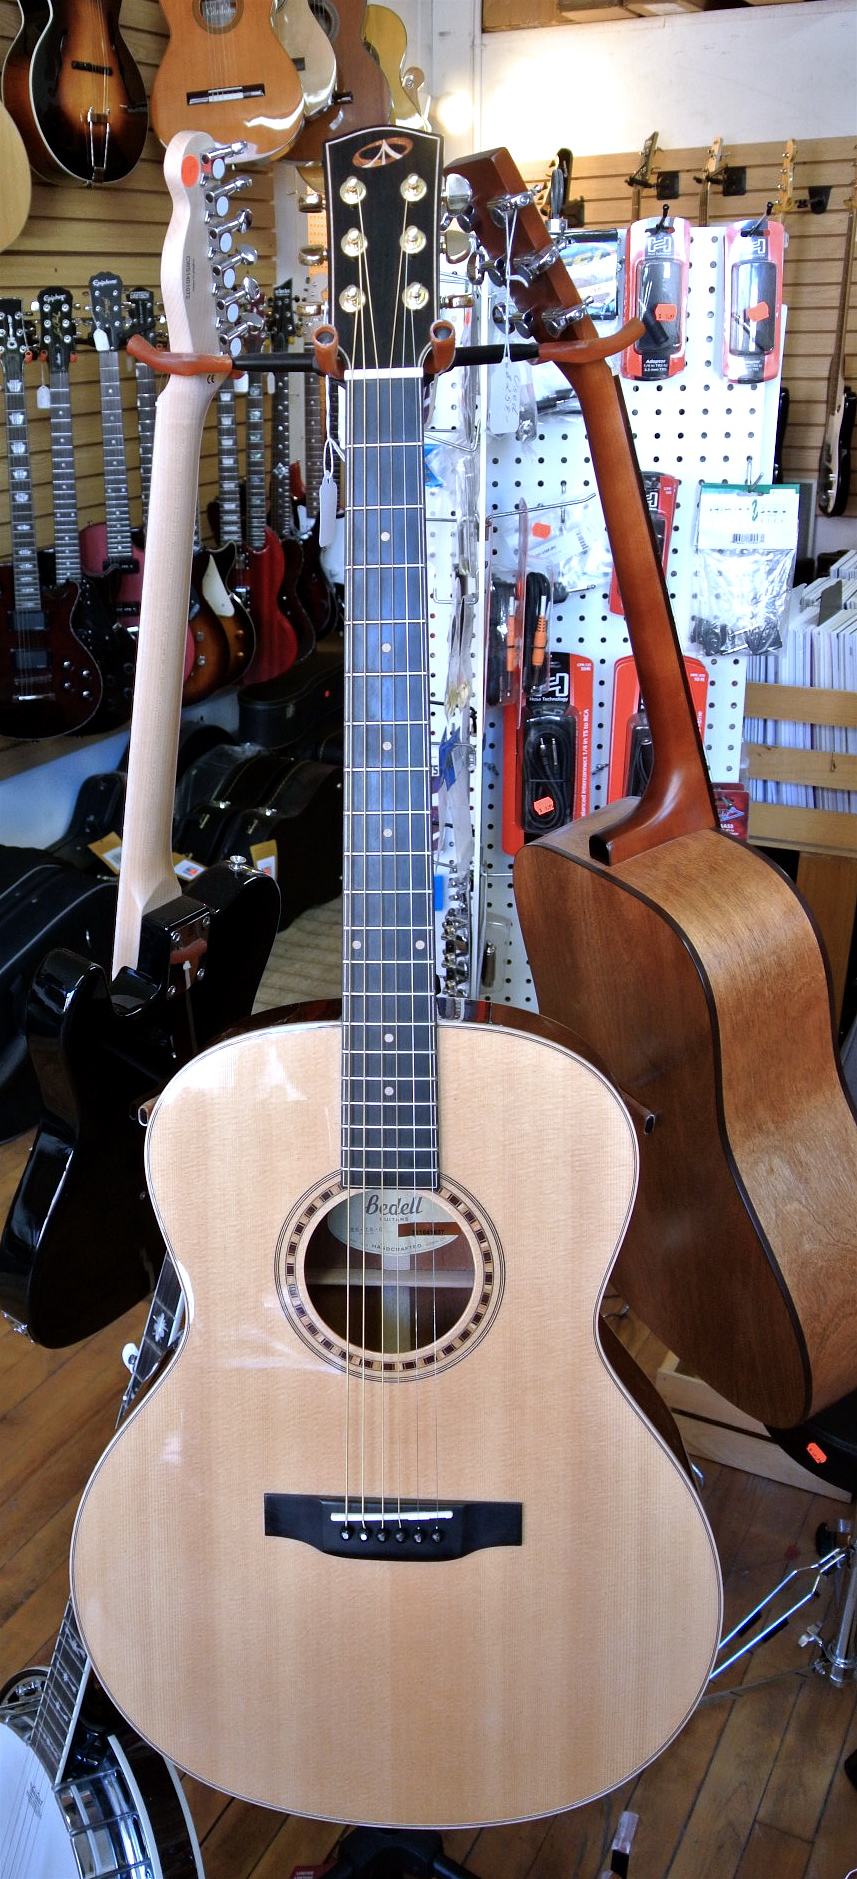 Used Bedell MB-18G